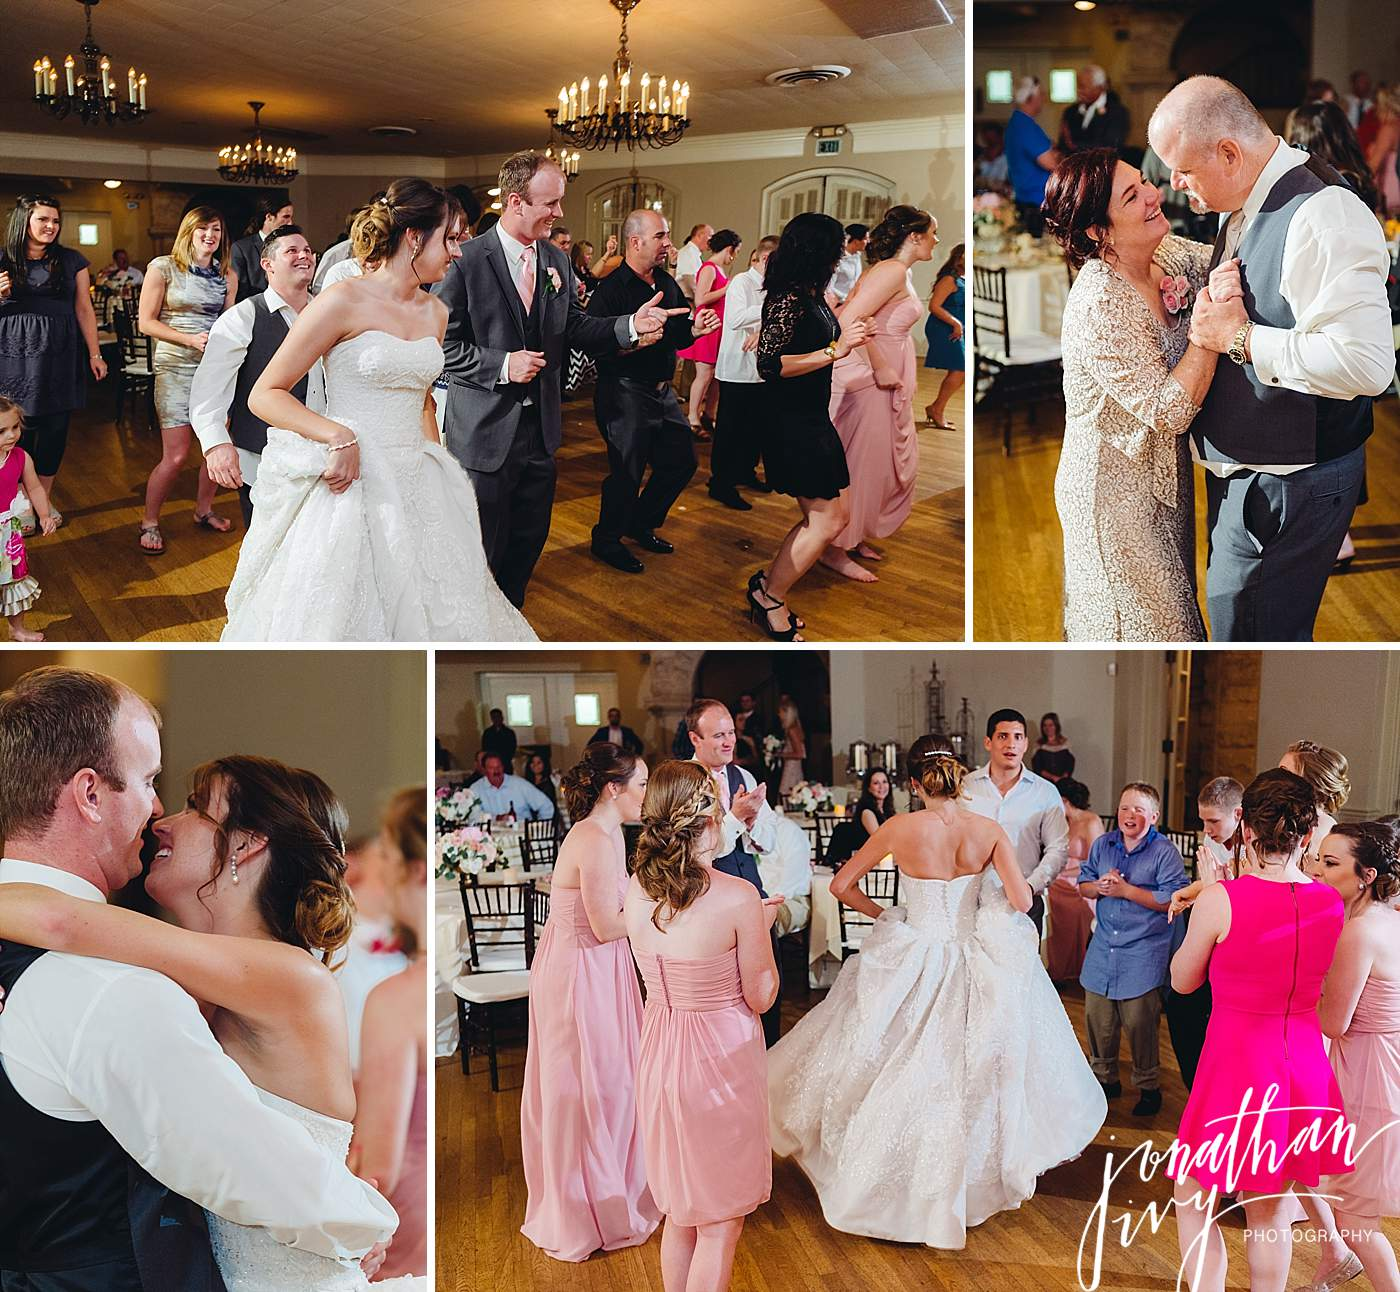 Austin Wedding,Austin Wedding Photographer,Houston Wedding Photographer,The Woodlands Wedding Photographer,